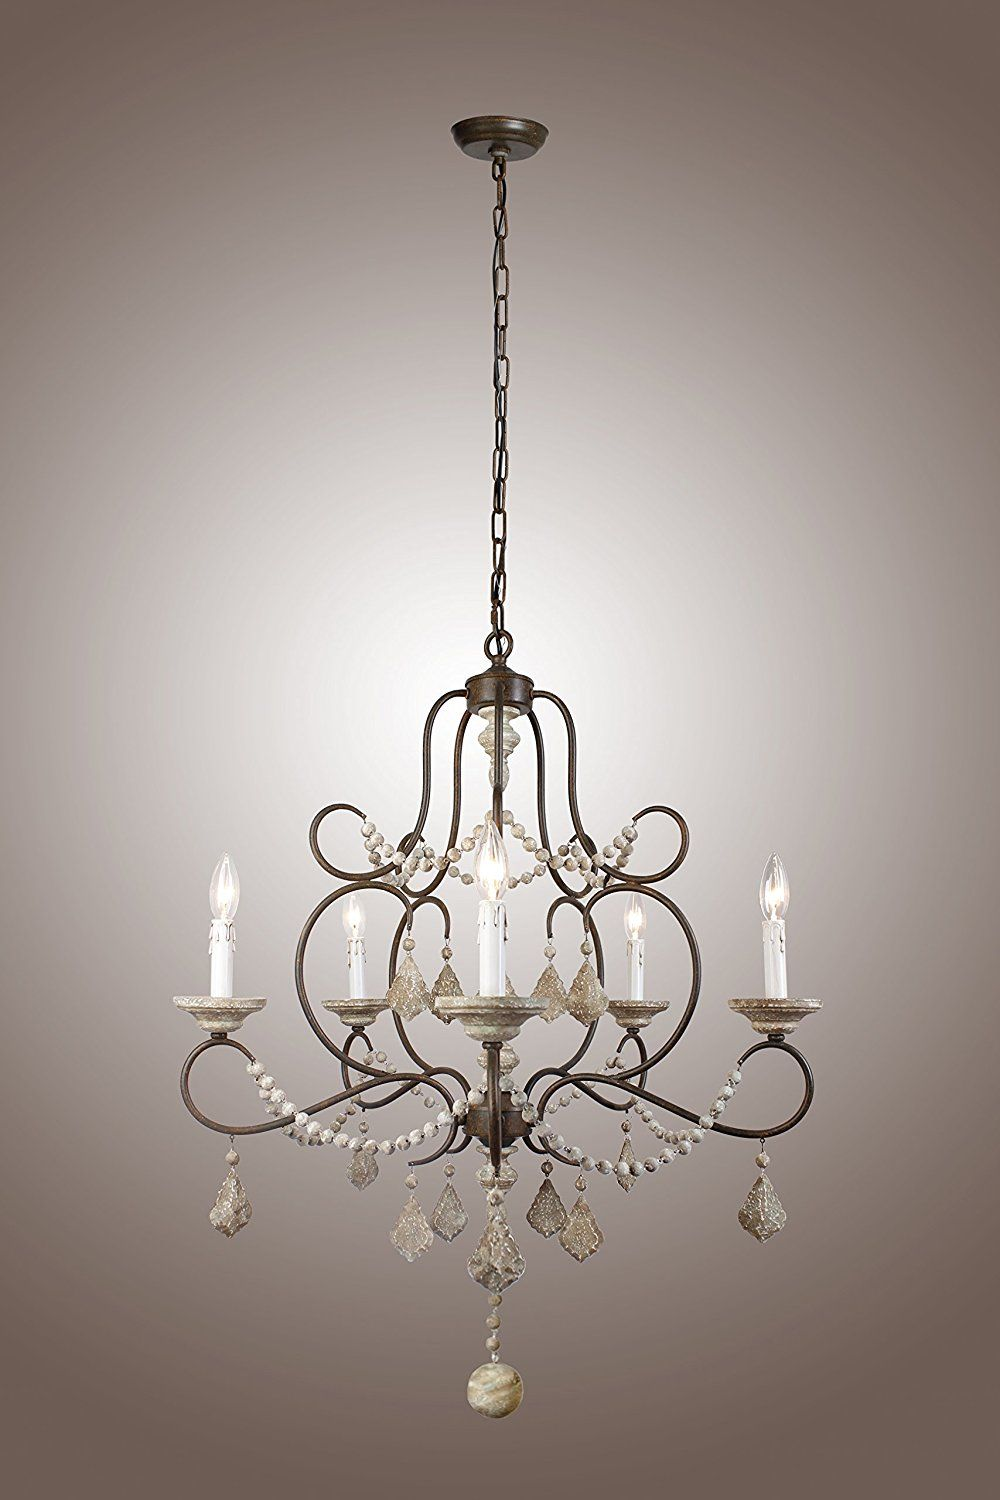 5 Lights Iron Frame Wood Beads Chandelier French Chateau Country Wood Bead Chandelier Country Chandelier French Country Chandelier